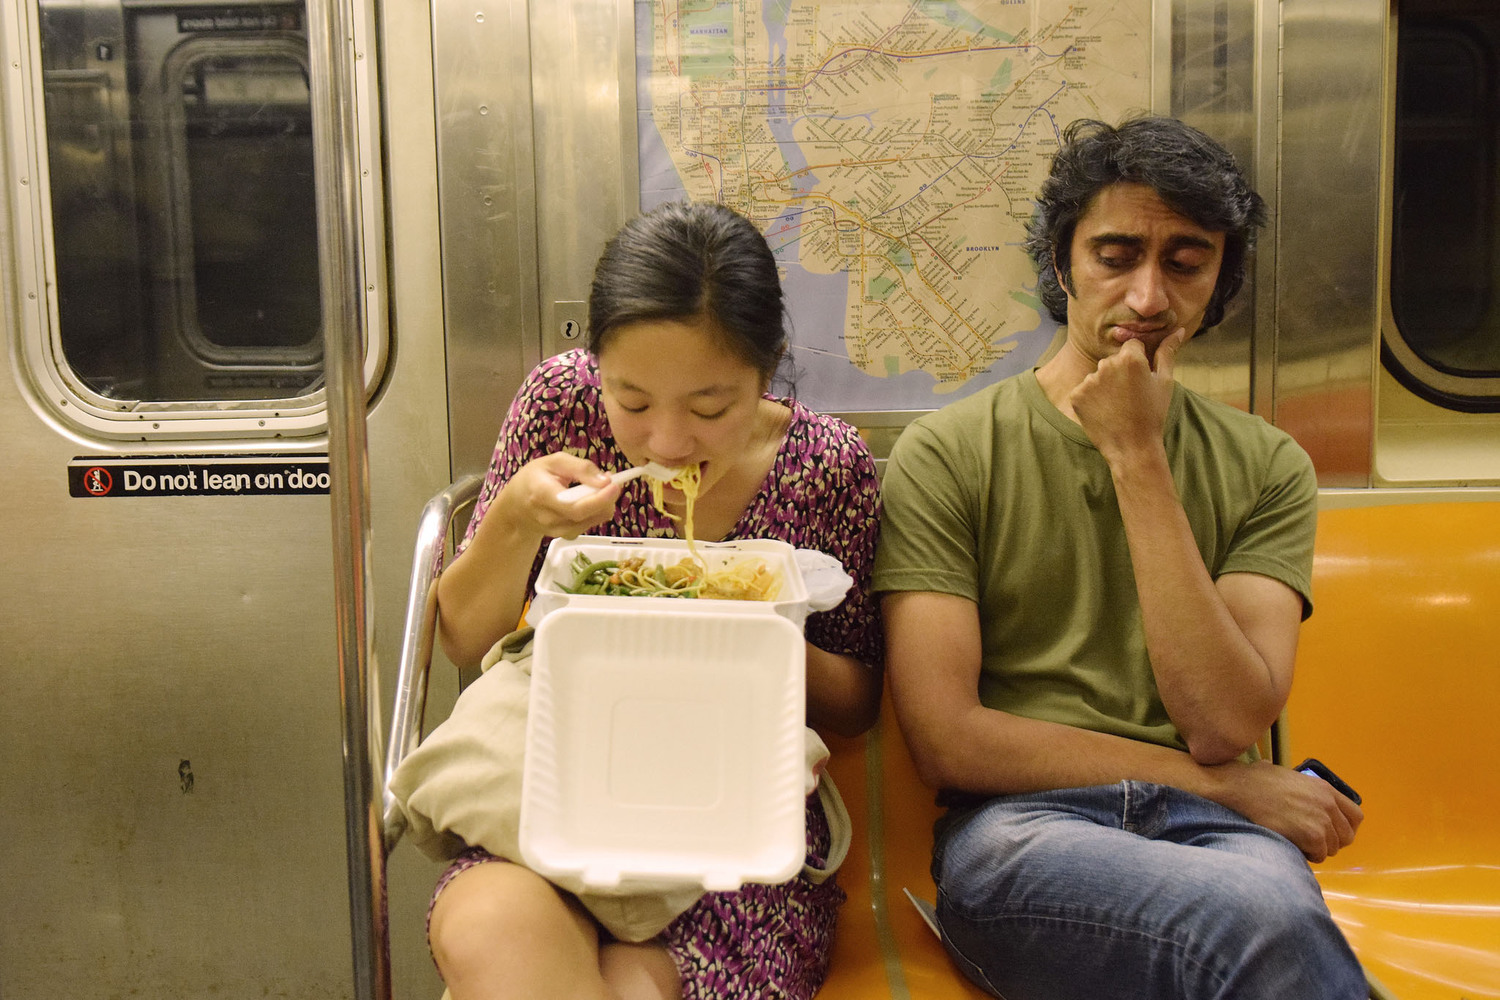 "Woman Eating Takeout on Subway While Man Gives Side Eye | You can use this photo for non-commercial purposes if you give credit, under this <a href=""https://creativecommons.org/licenses/by-nc/3.0/us/"" rel=""nofollow"">Creative Commons license</a>. For-profit media organizations also may use this, but as editorial content only (as illustrations for stories, for example, but not as advertising). Credit must read: Richard Yeh / WNYC  We'd love to know if you're using this photo - send us an email (jkeefe@wnyc.org)!"